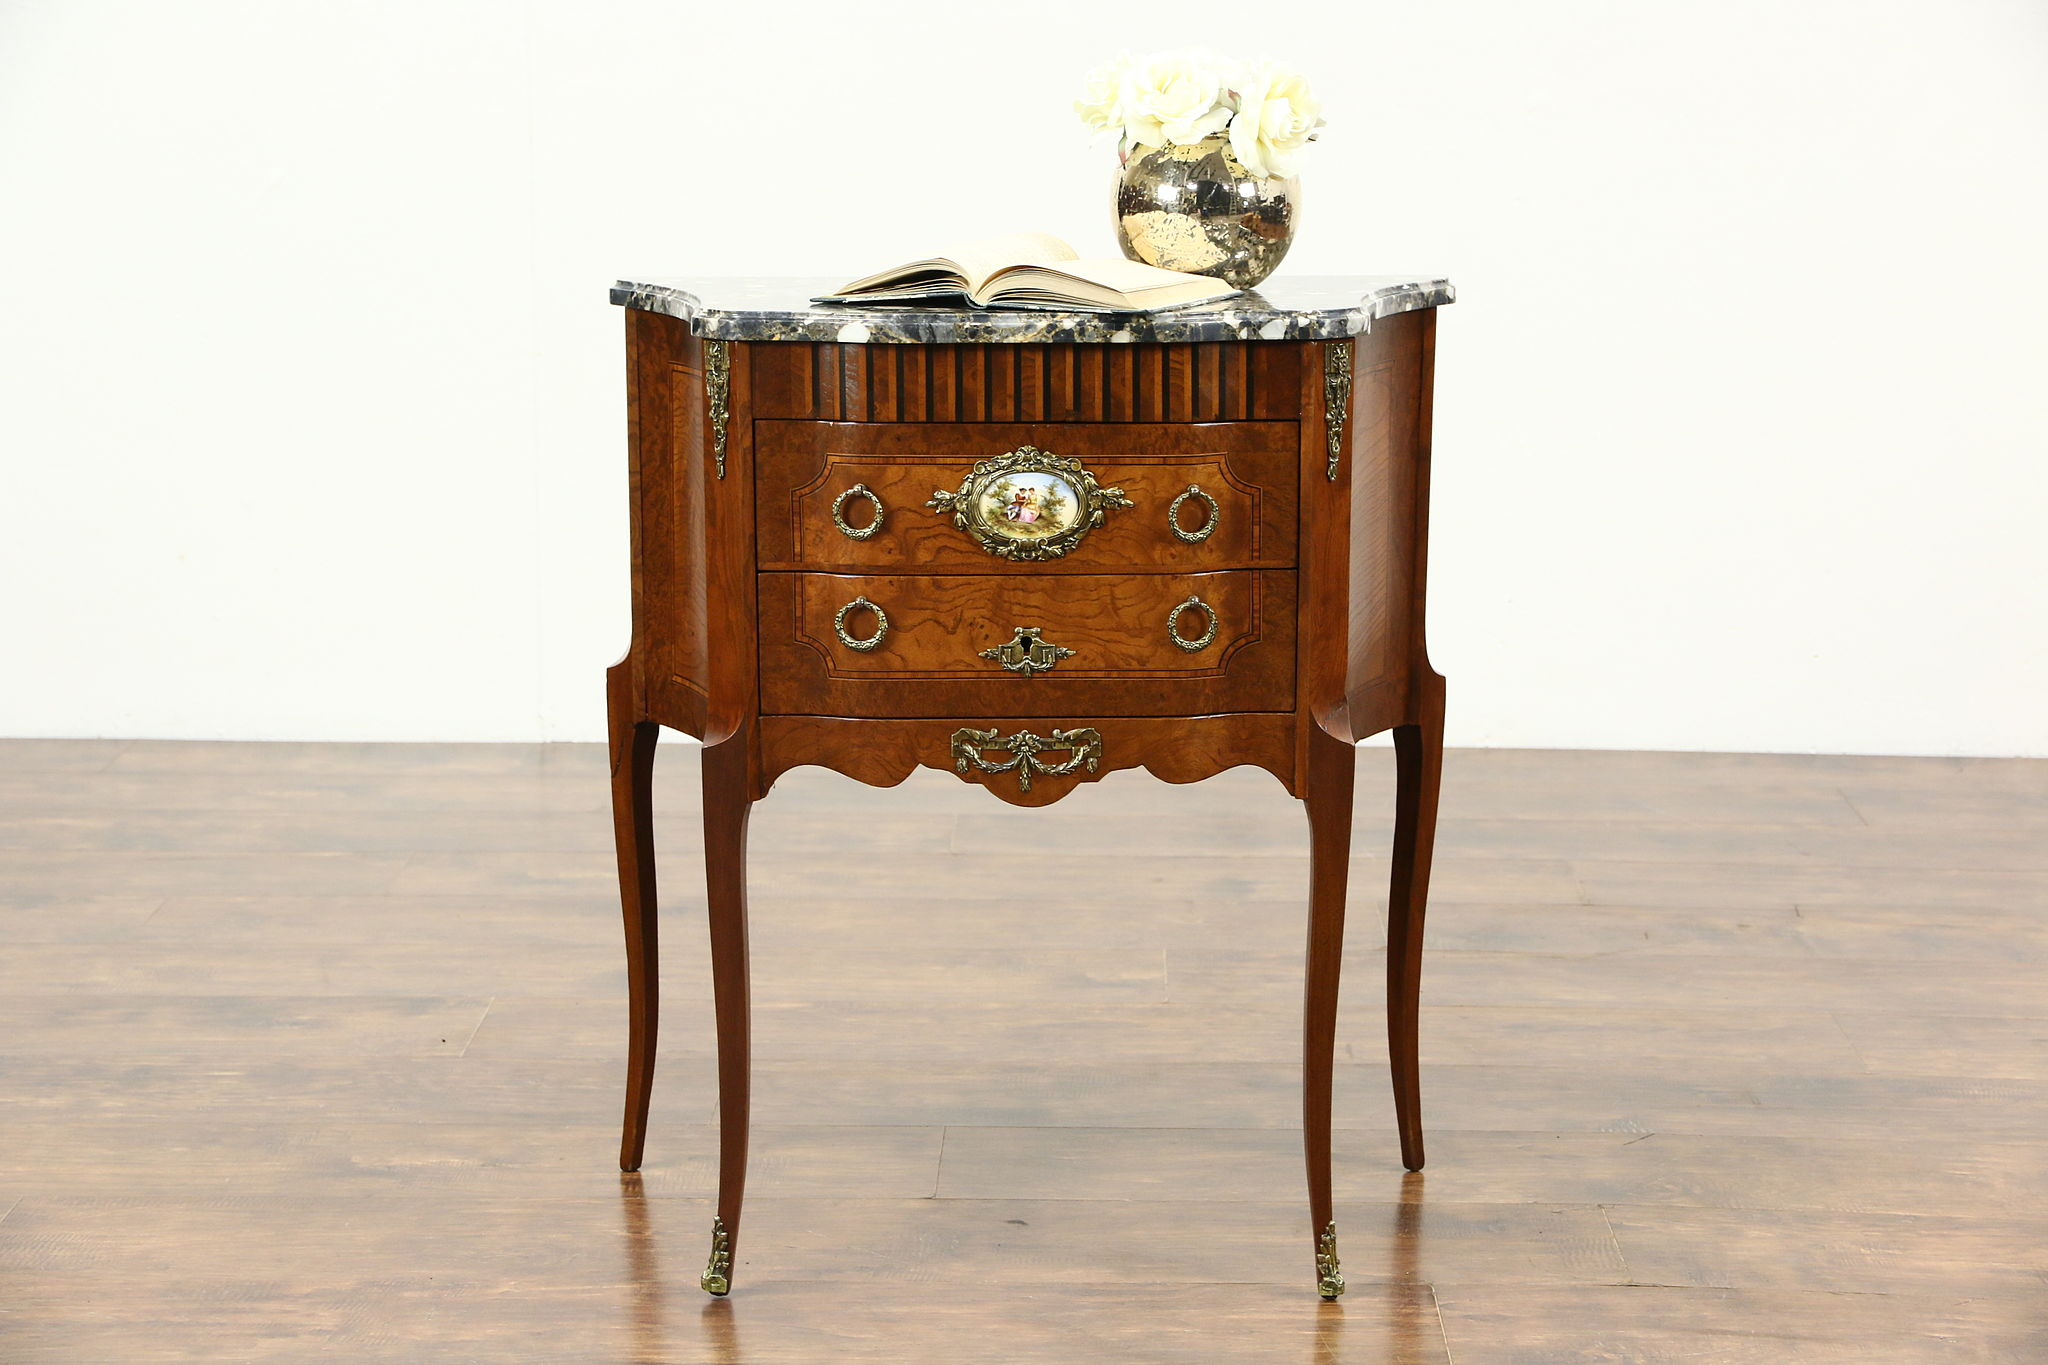 sold - french 1940's vintage small chest, end table or nightstand Marble Top Nightstand